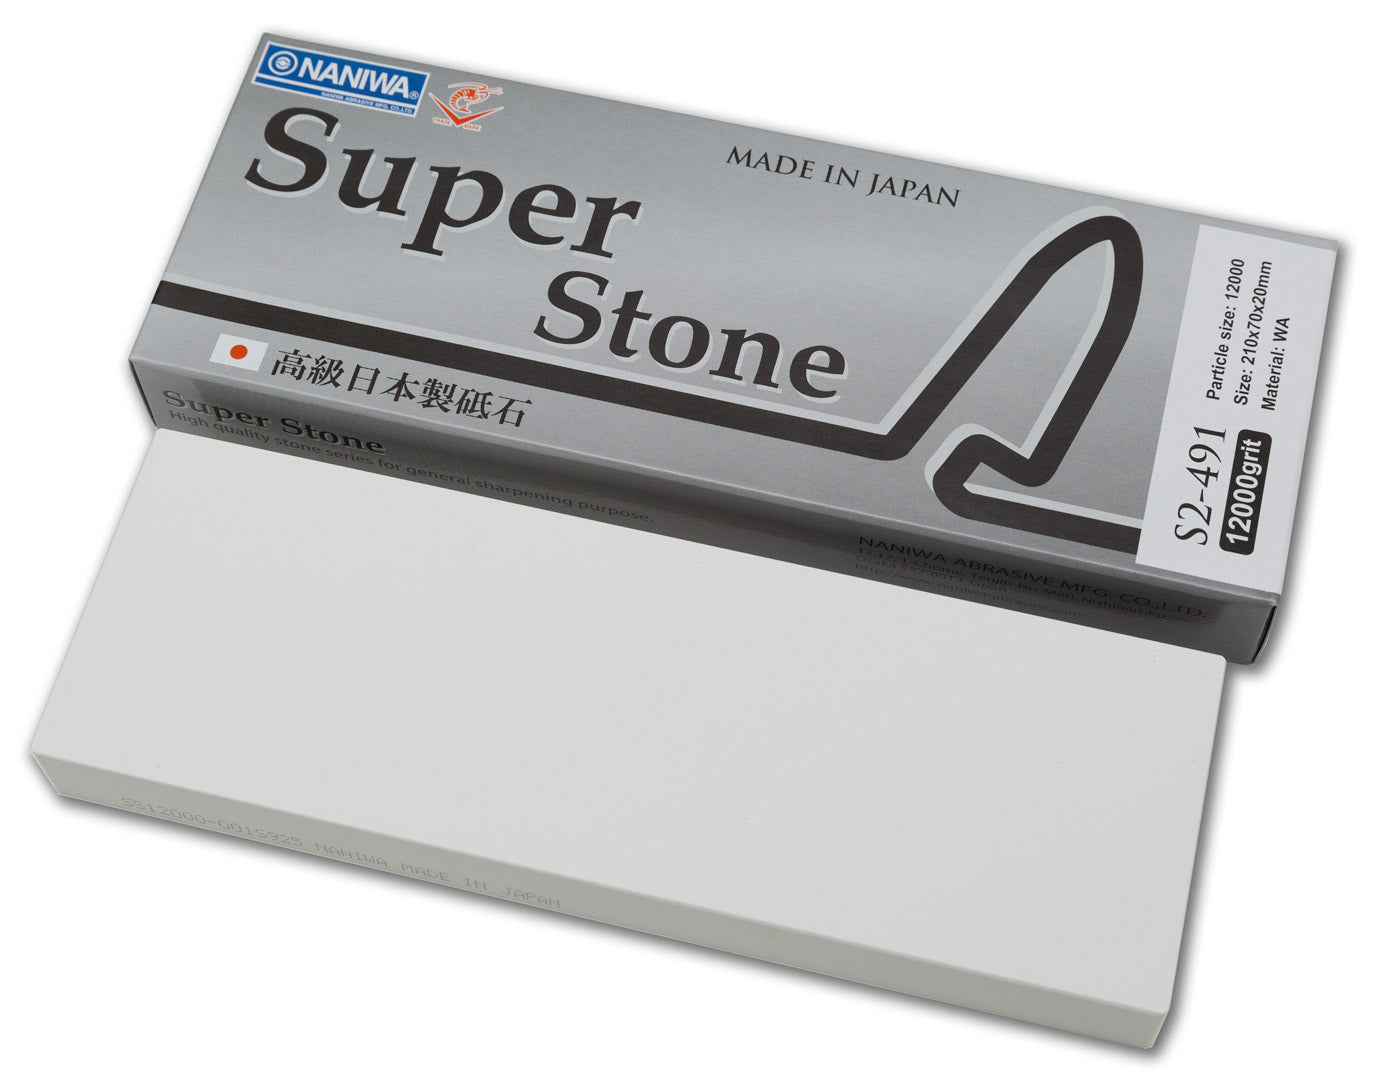 Naniwa Super-Stone Japanese Whetstone Sharpening Stone, 12,000 grit